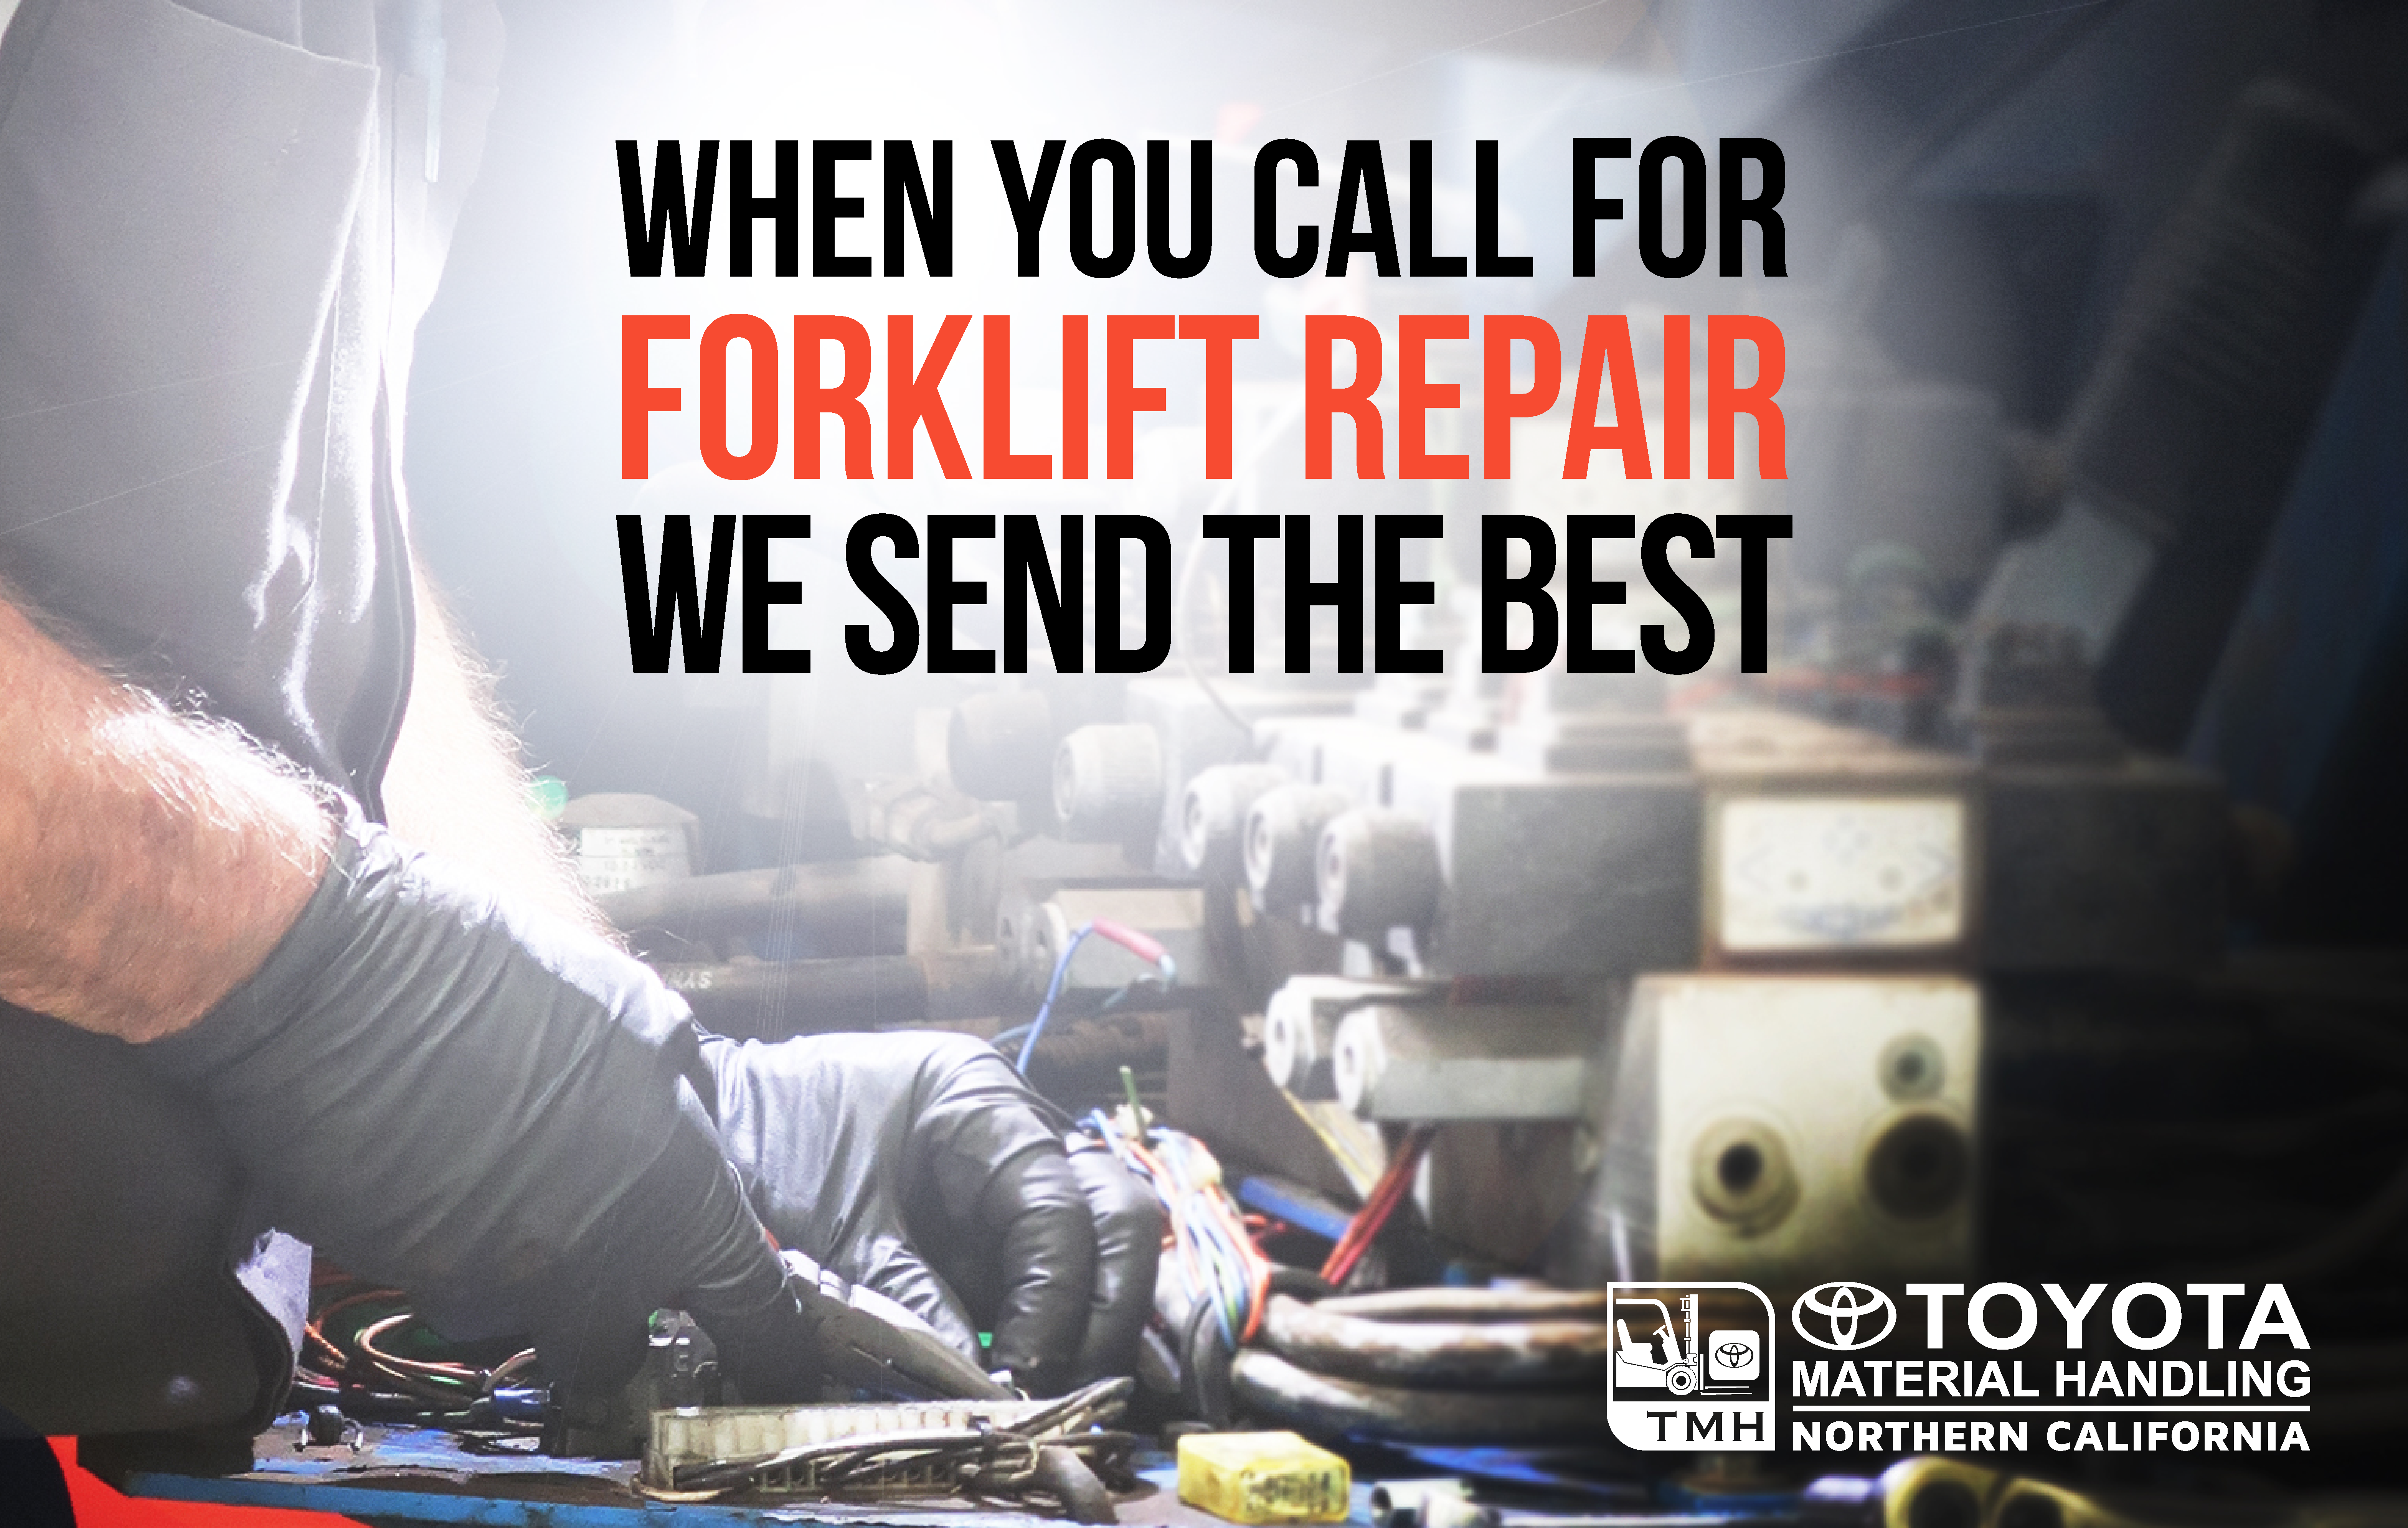 When You Call For Forklift Repair We Send The Best